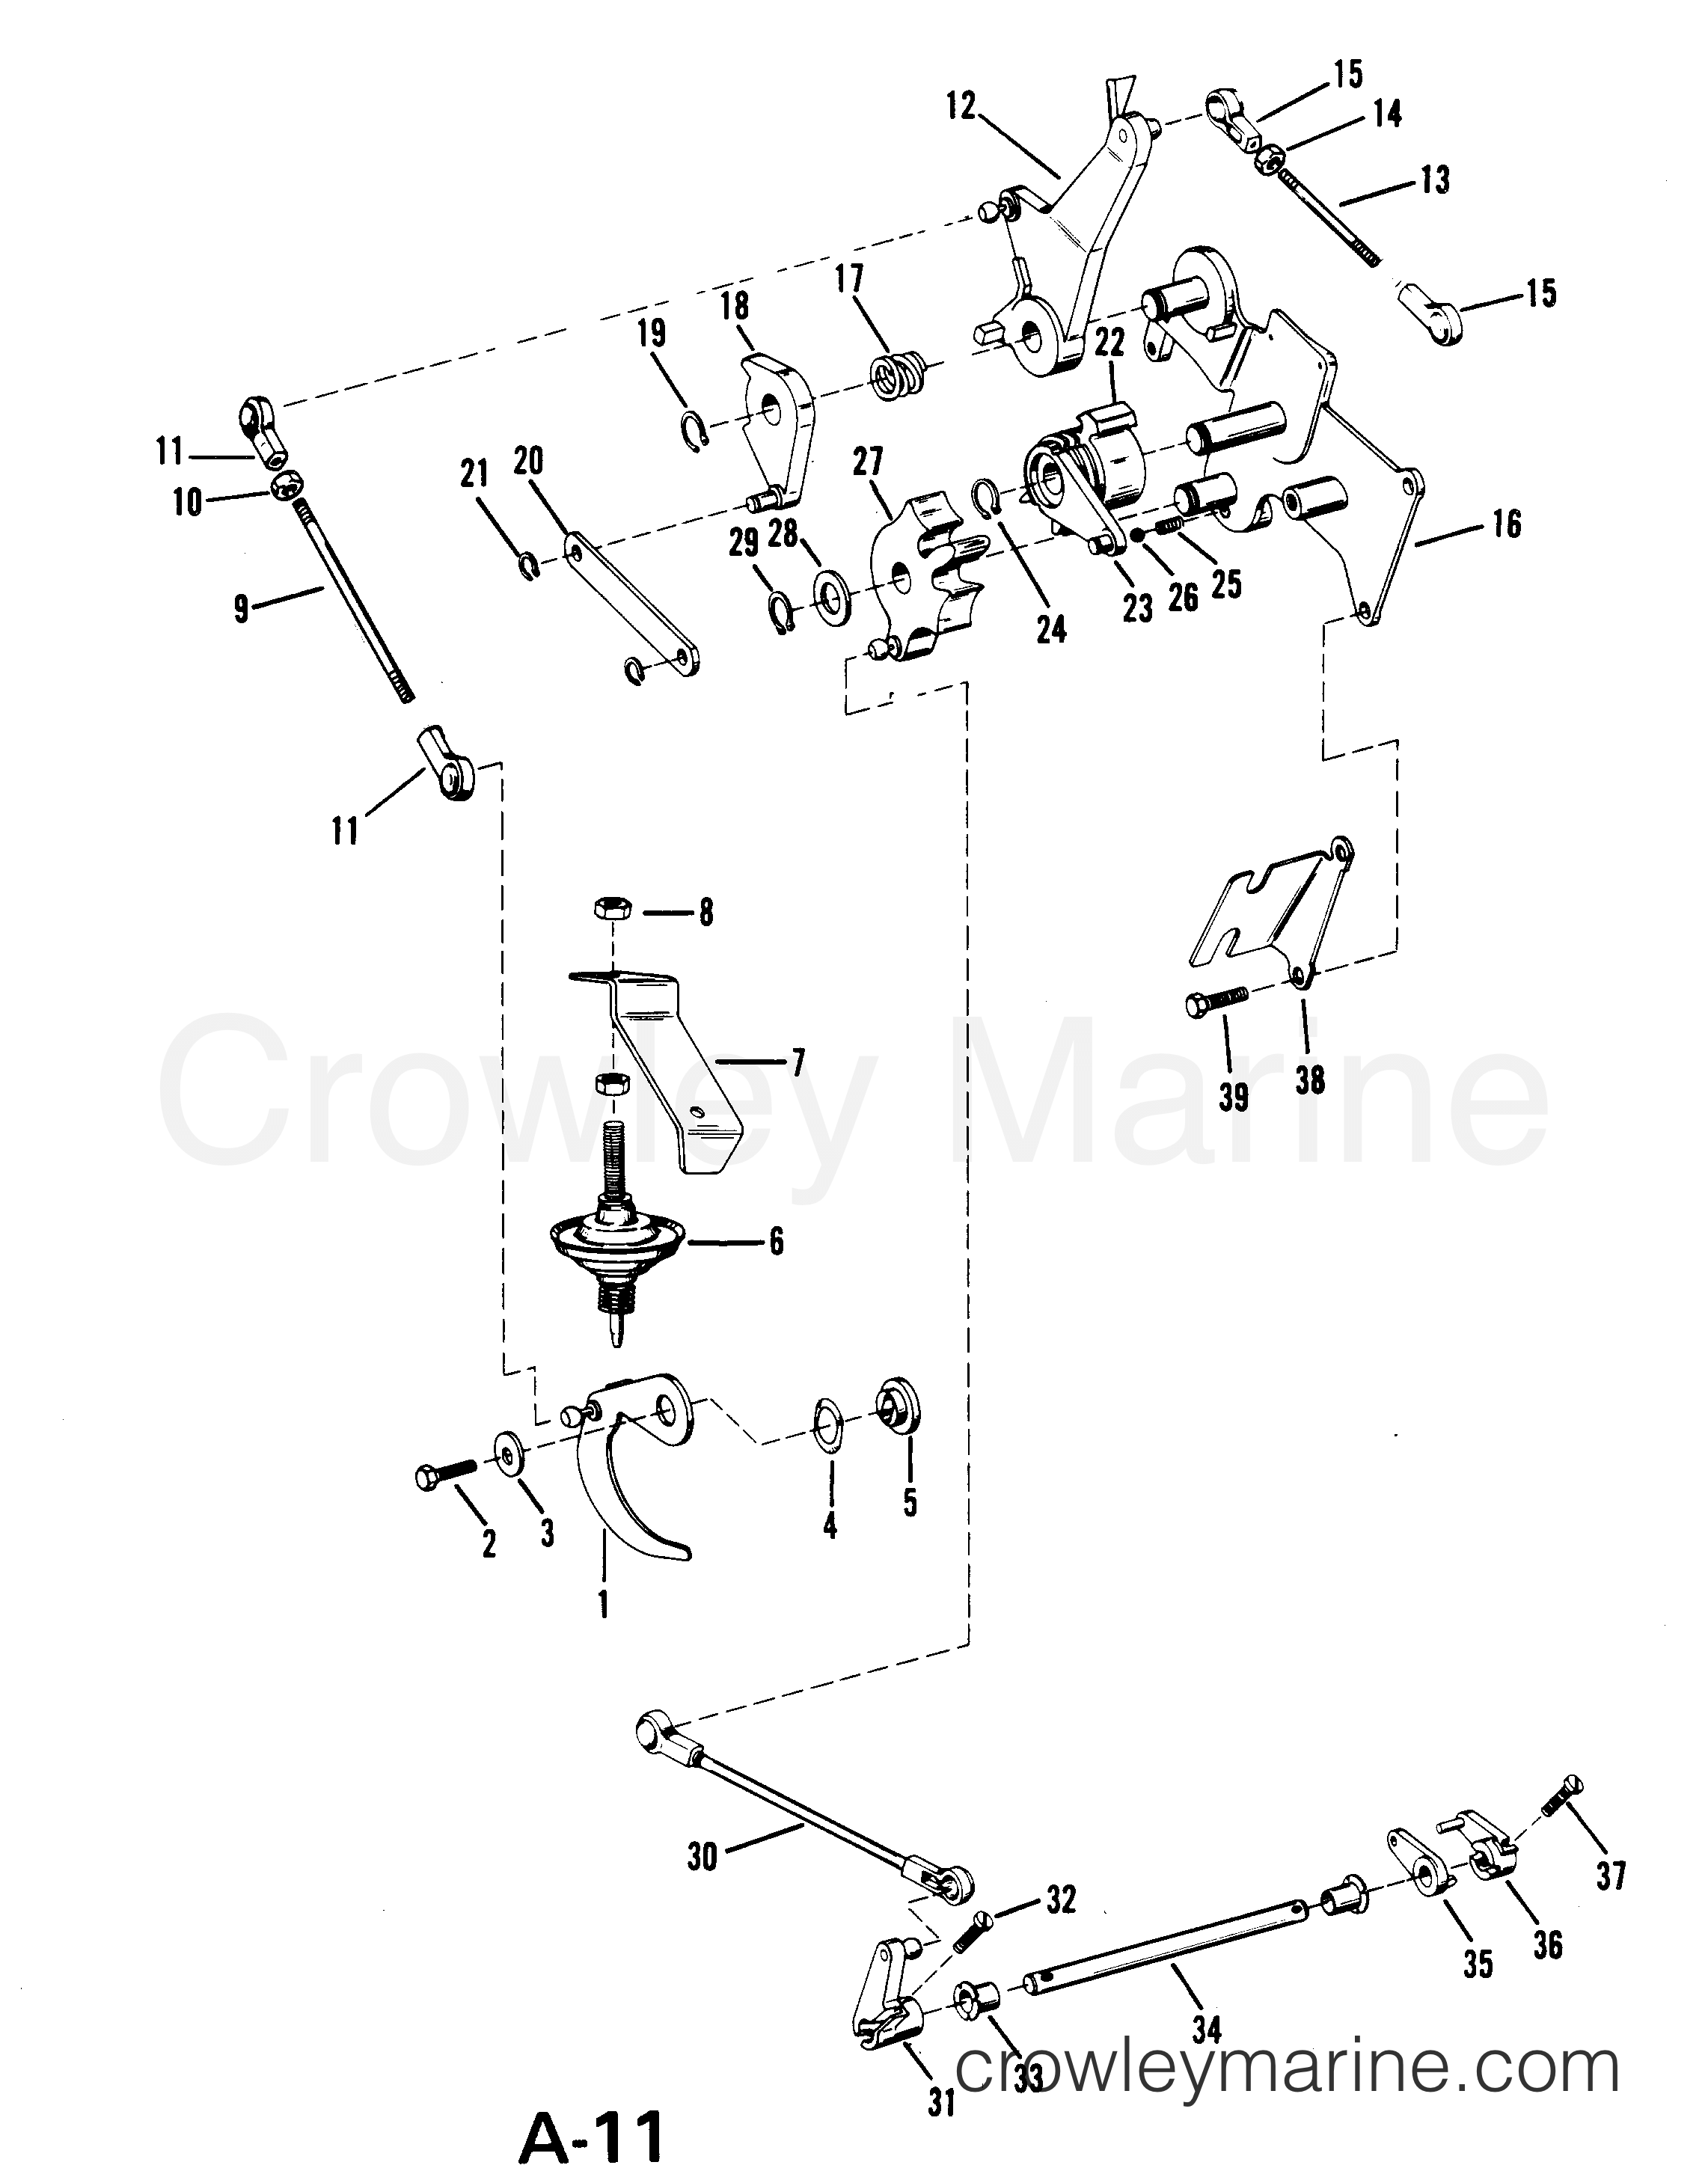 Throttle And Shift Linkage Manual Serial Range Mercury Outboard 65 Hp Motor Wiring Diagram 18 6416713 Thru 6443972 Usa